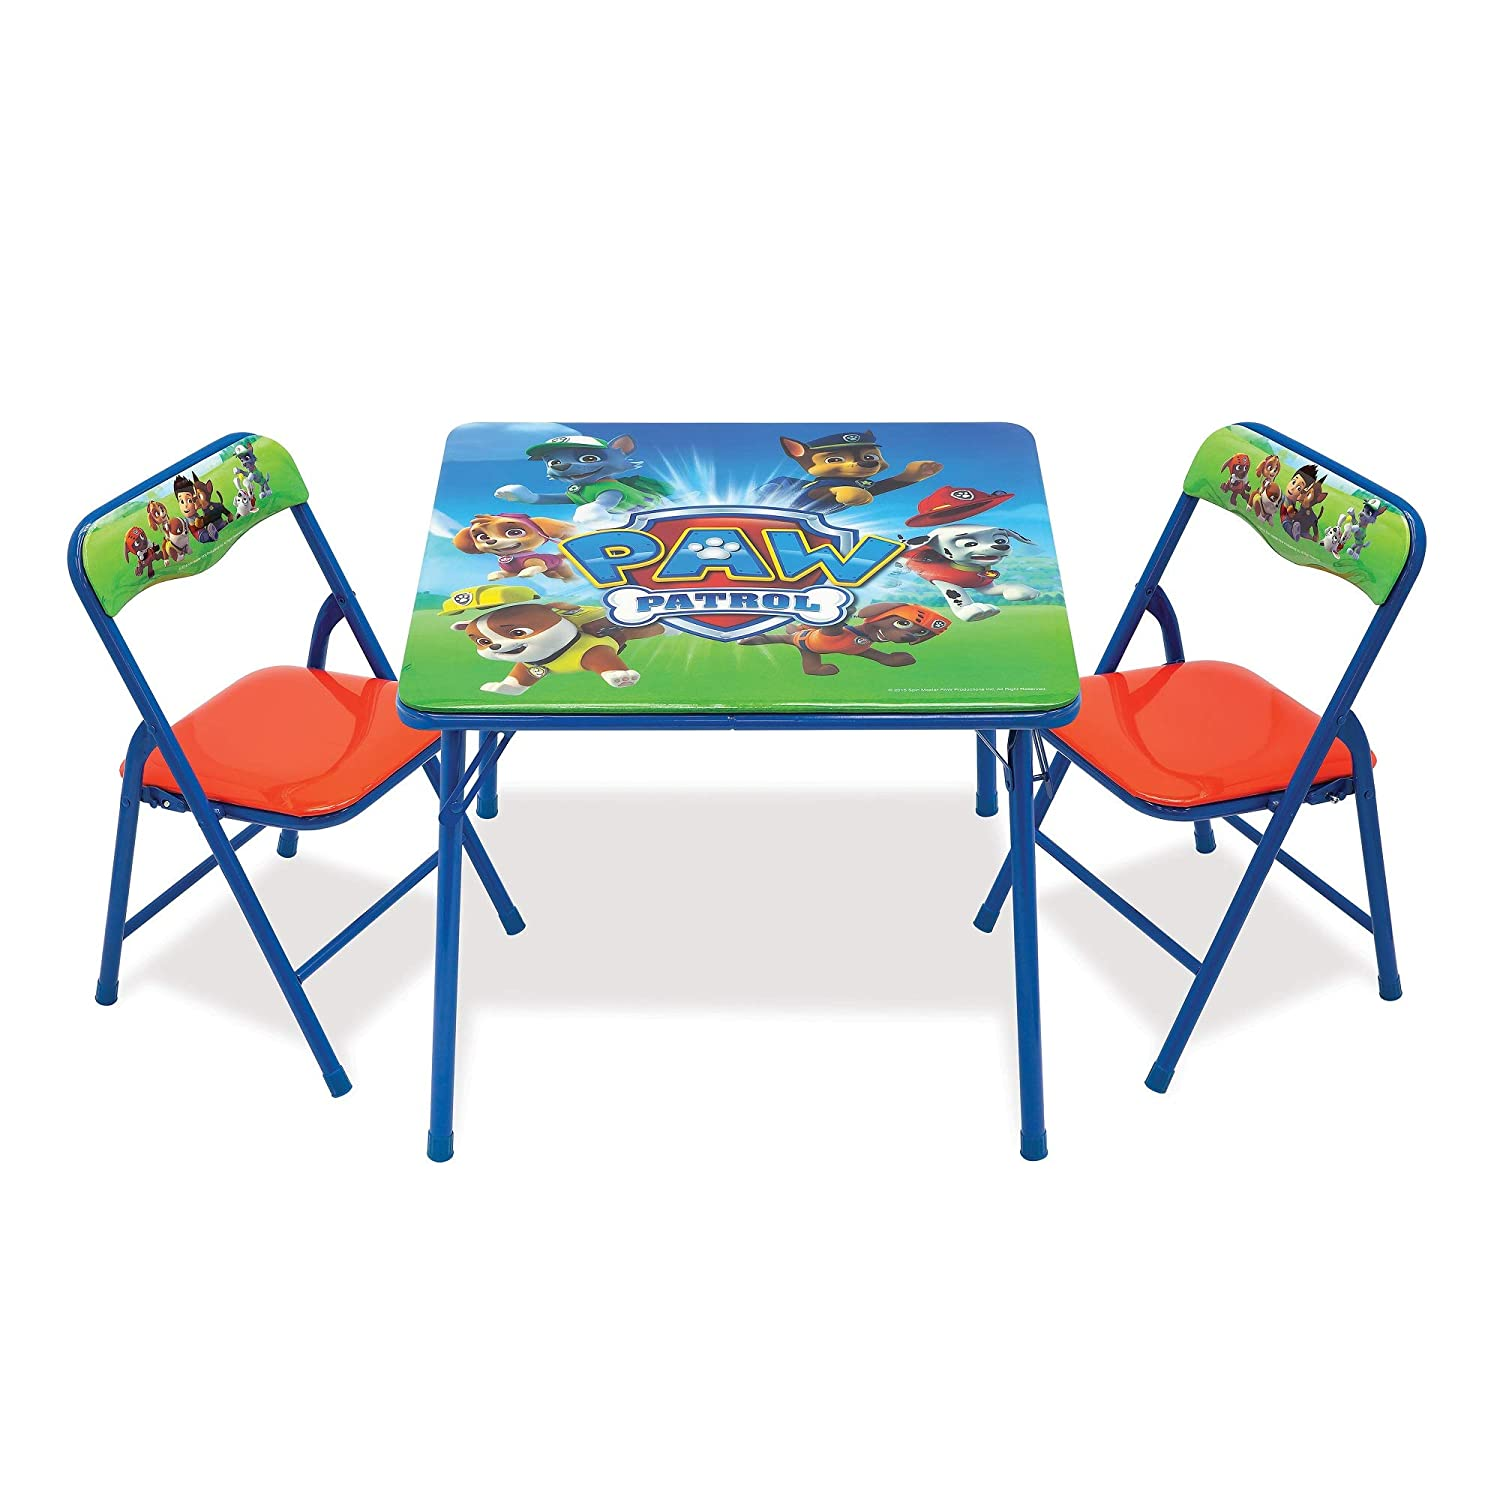 Brilliant Paw Patrol Activity Table Sets Folding Childrens Table Chair Set Includes 2 Kid Chairs With Non Skid Rubber Feet Padded Seats Sturdy Metal Creativecarmelina Interior Chair Design Creativecarmelinacom